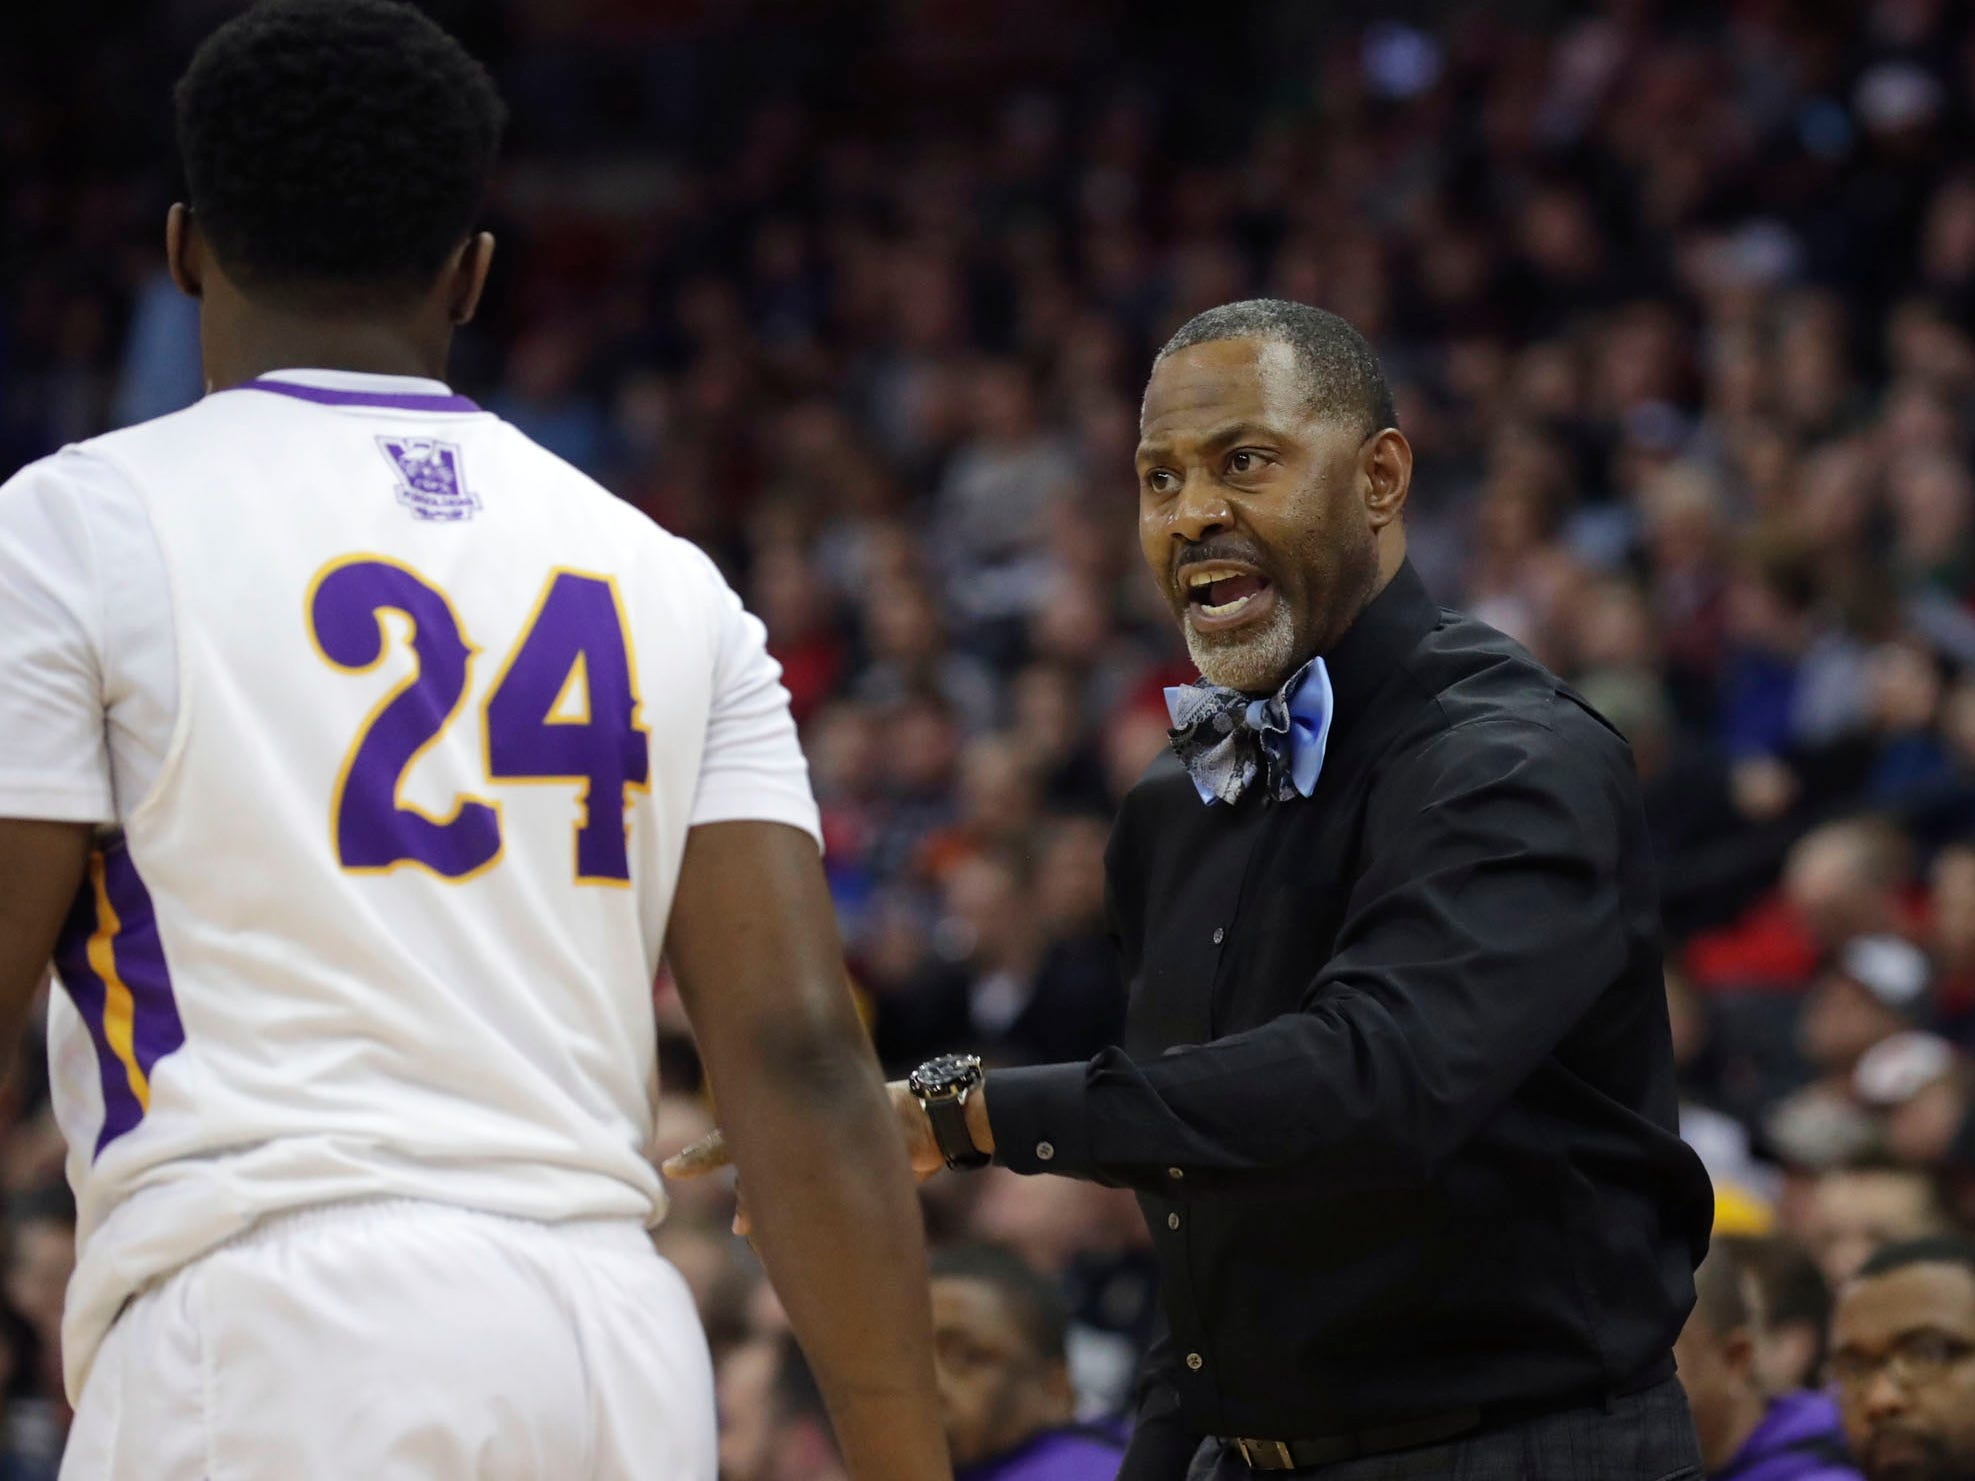 Milwaukee Washington coach Fred Riley talks with Remon Blakely during a the WIAA Division 2 semifinal game Friday afternoon.